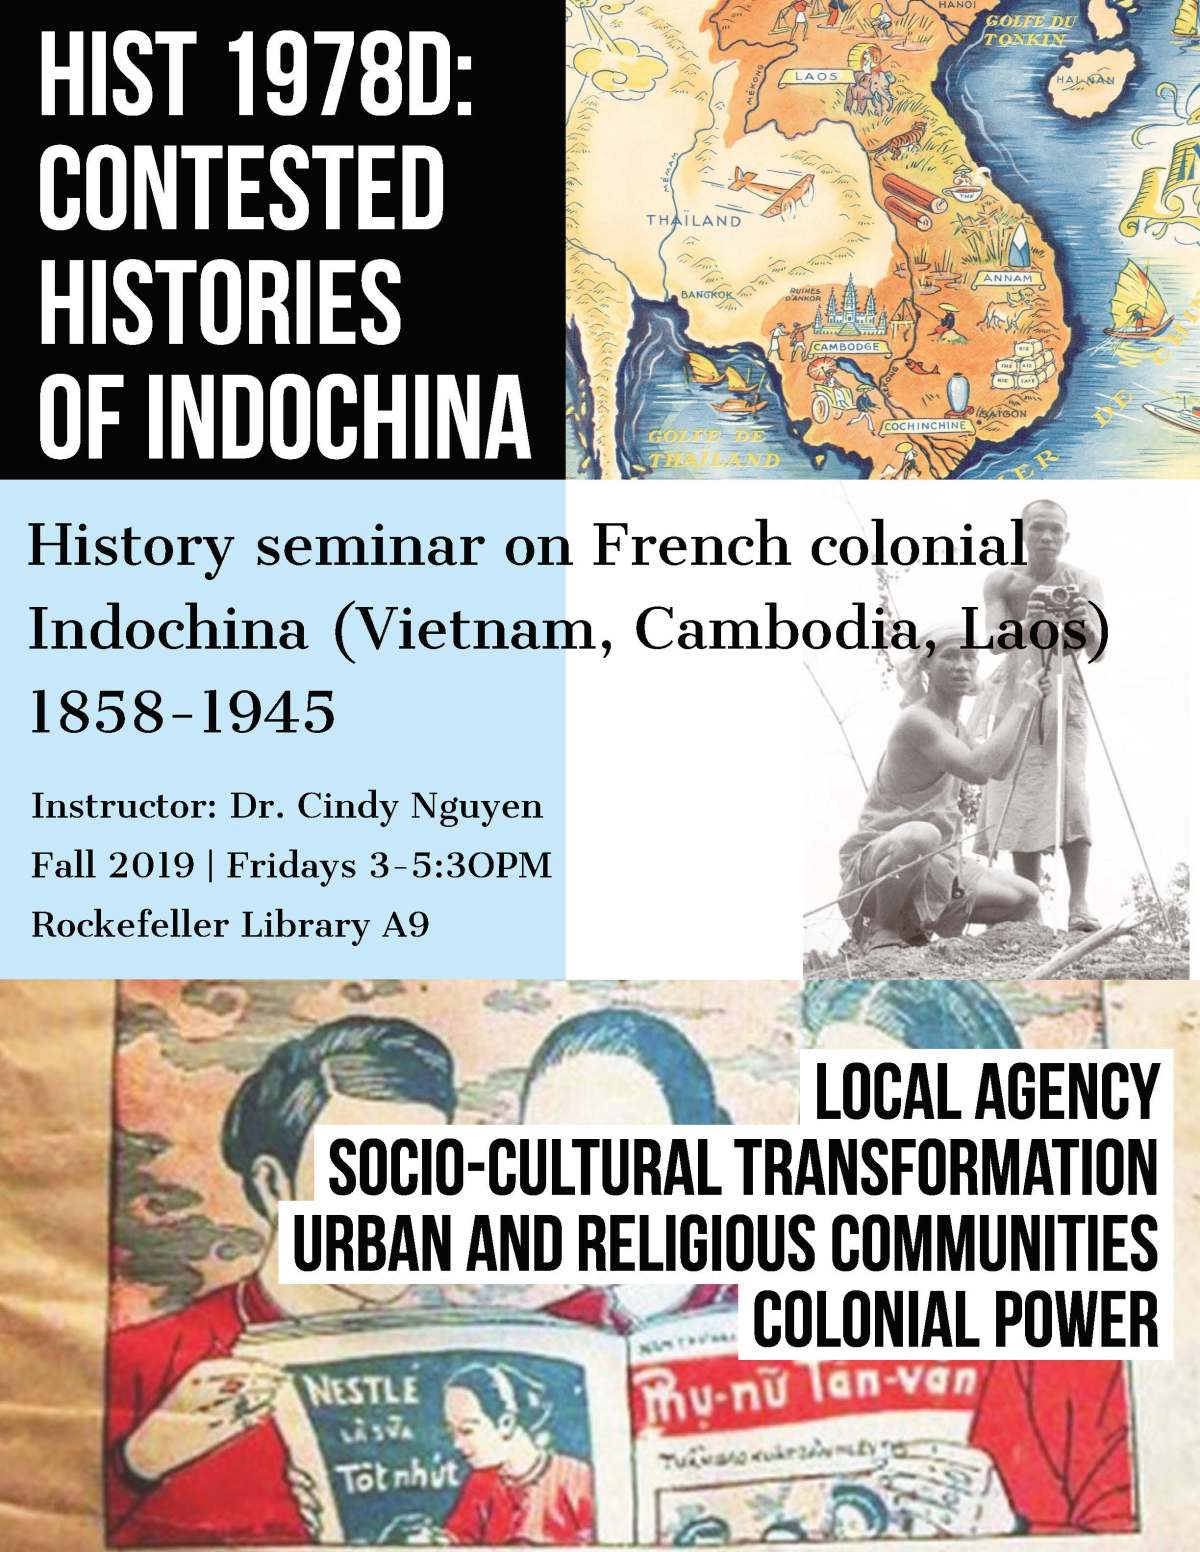 [SYLLABUS] Contested Histories of ColonialIndochina